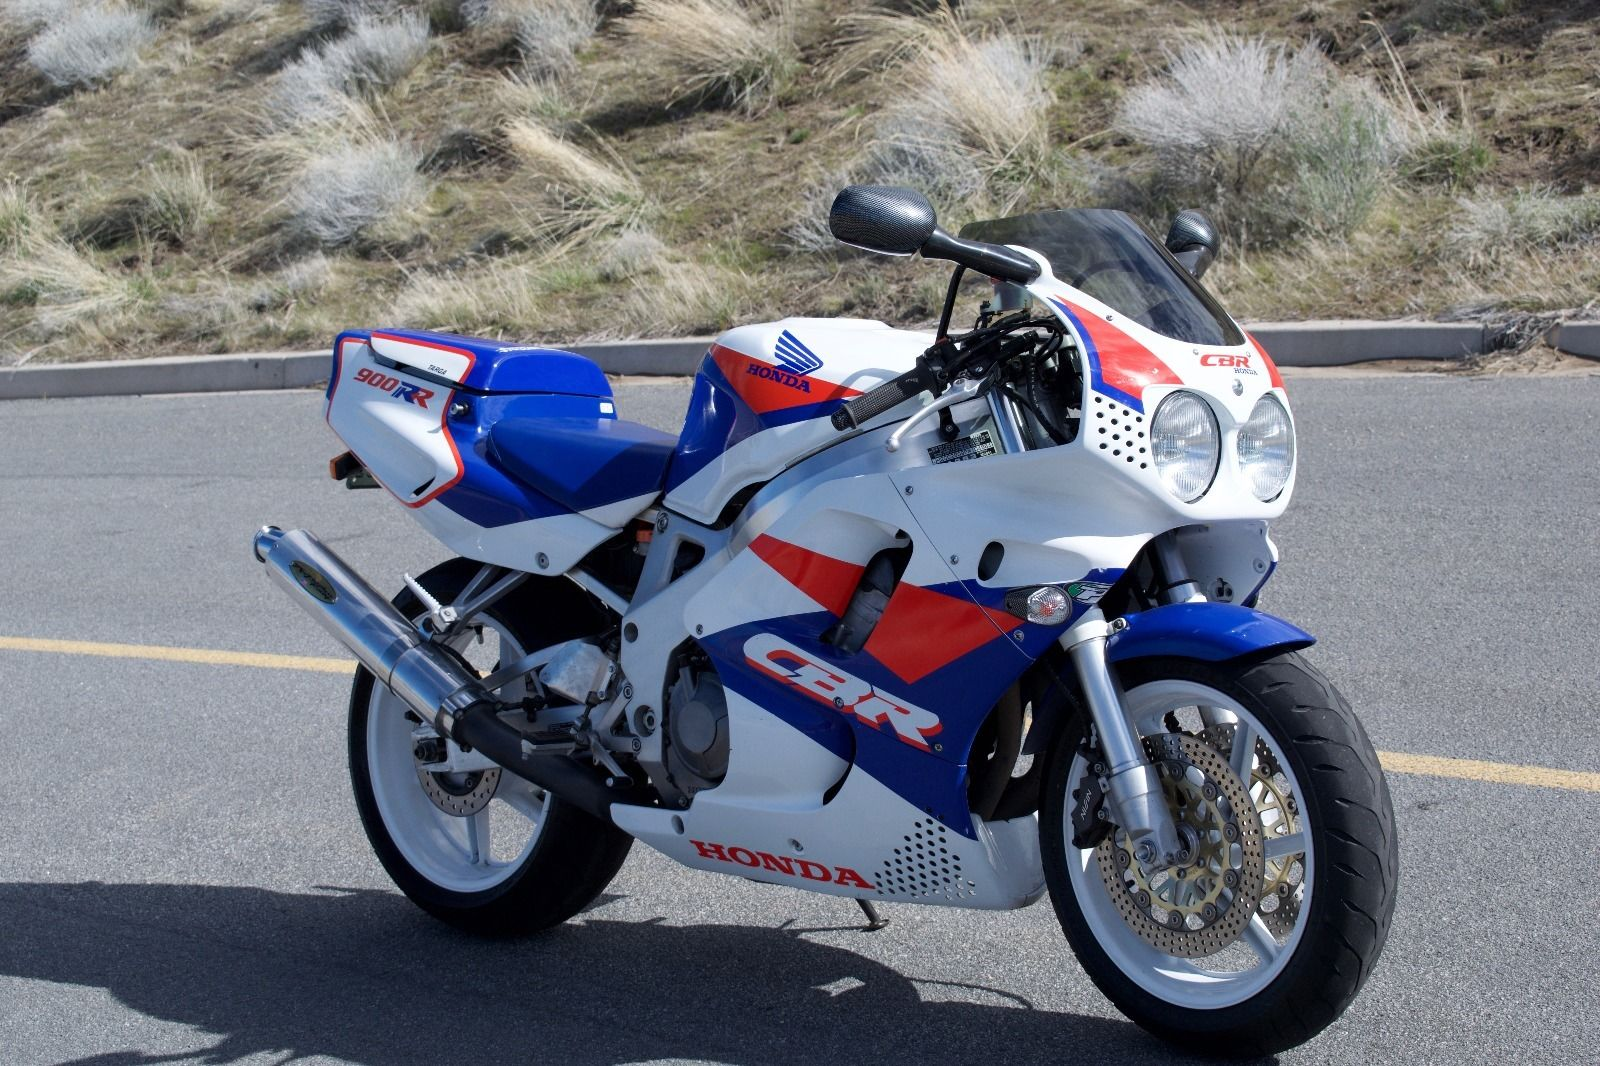 We do not see all that many first gen 900RR models, and when it comes to  valuation these are likely the first to serious appreciate.